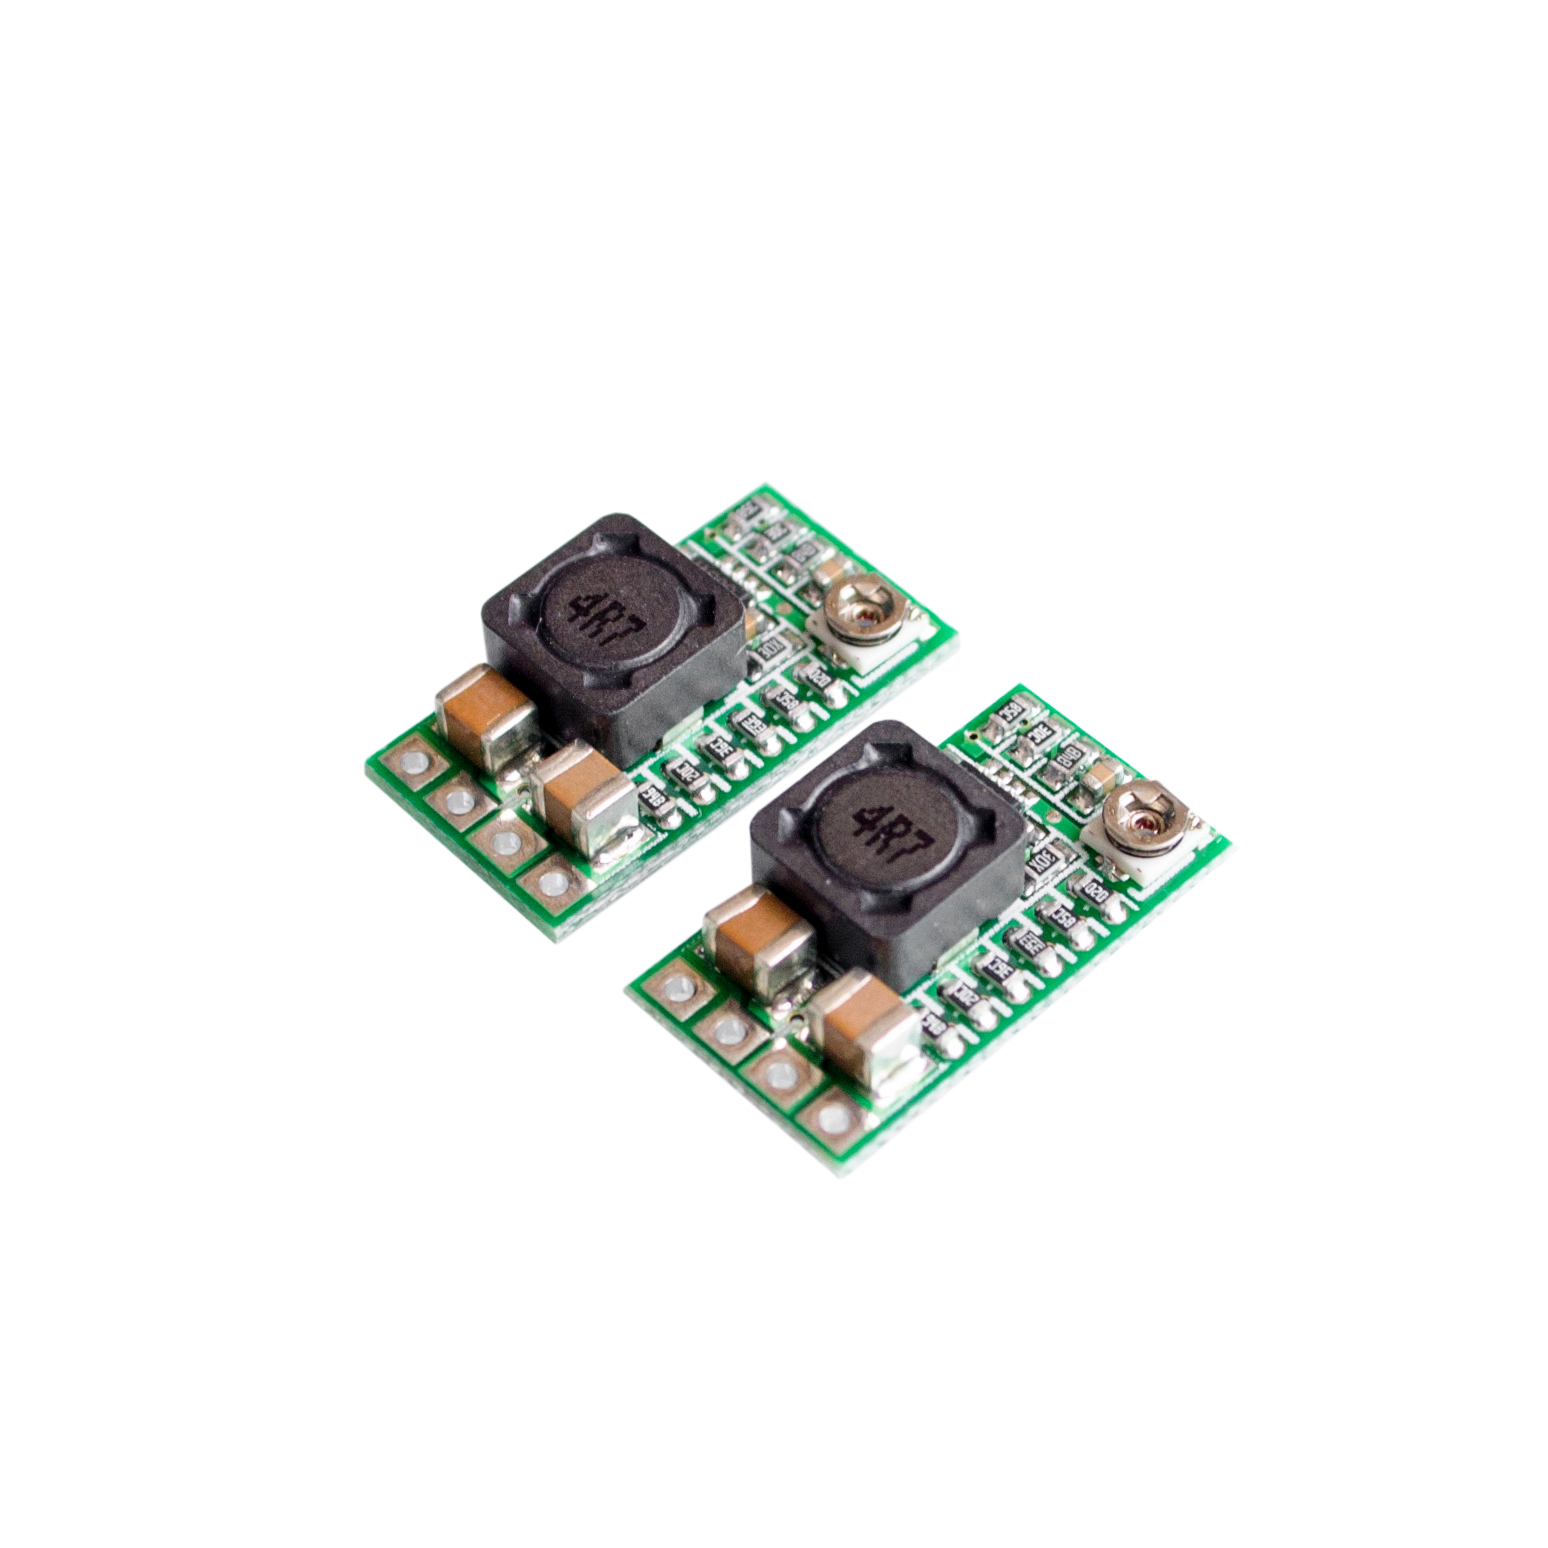 Image 3 - 10PCS/LOT Mini DC DC 12 24V To 5V 3A Step Down Power Supply Module Buck Converter Adjustable Efficiency 97.5%-in Integrated Circuits from Electronic Components & Supplies